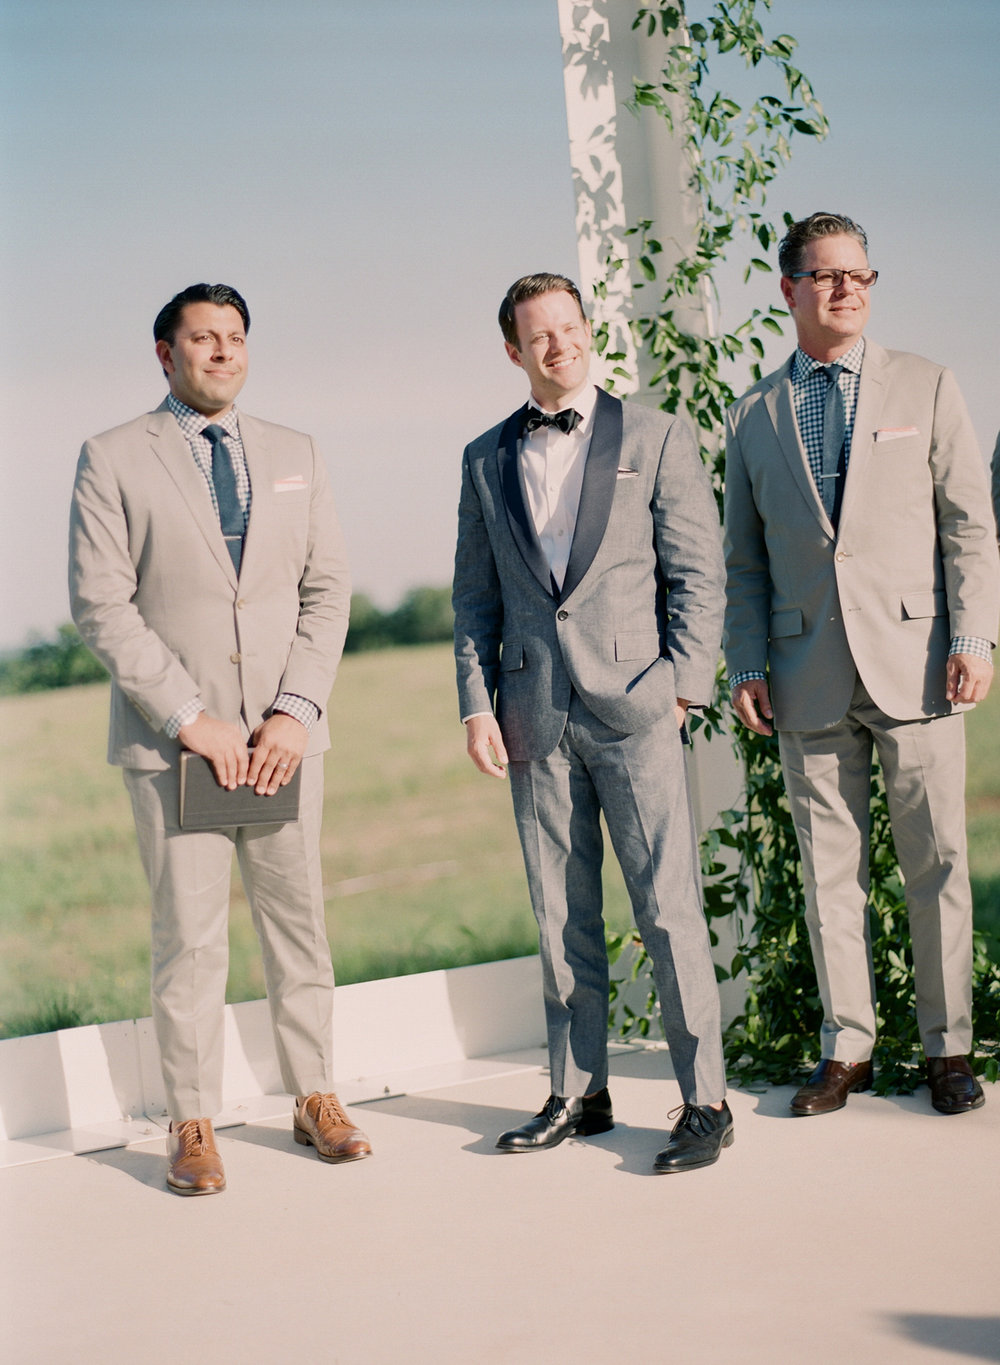 PROSPECT_HOUSE_WEDDING_AUSTIN_TX_BY_MATTHEW_MOORE_PHOTOGRAPHY_00373.jpg